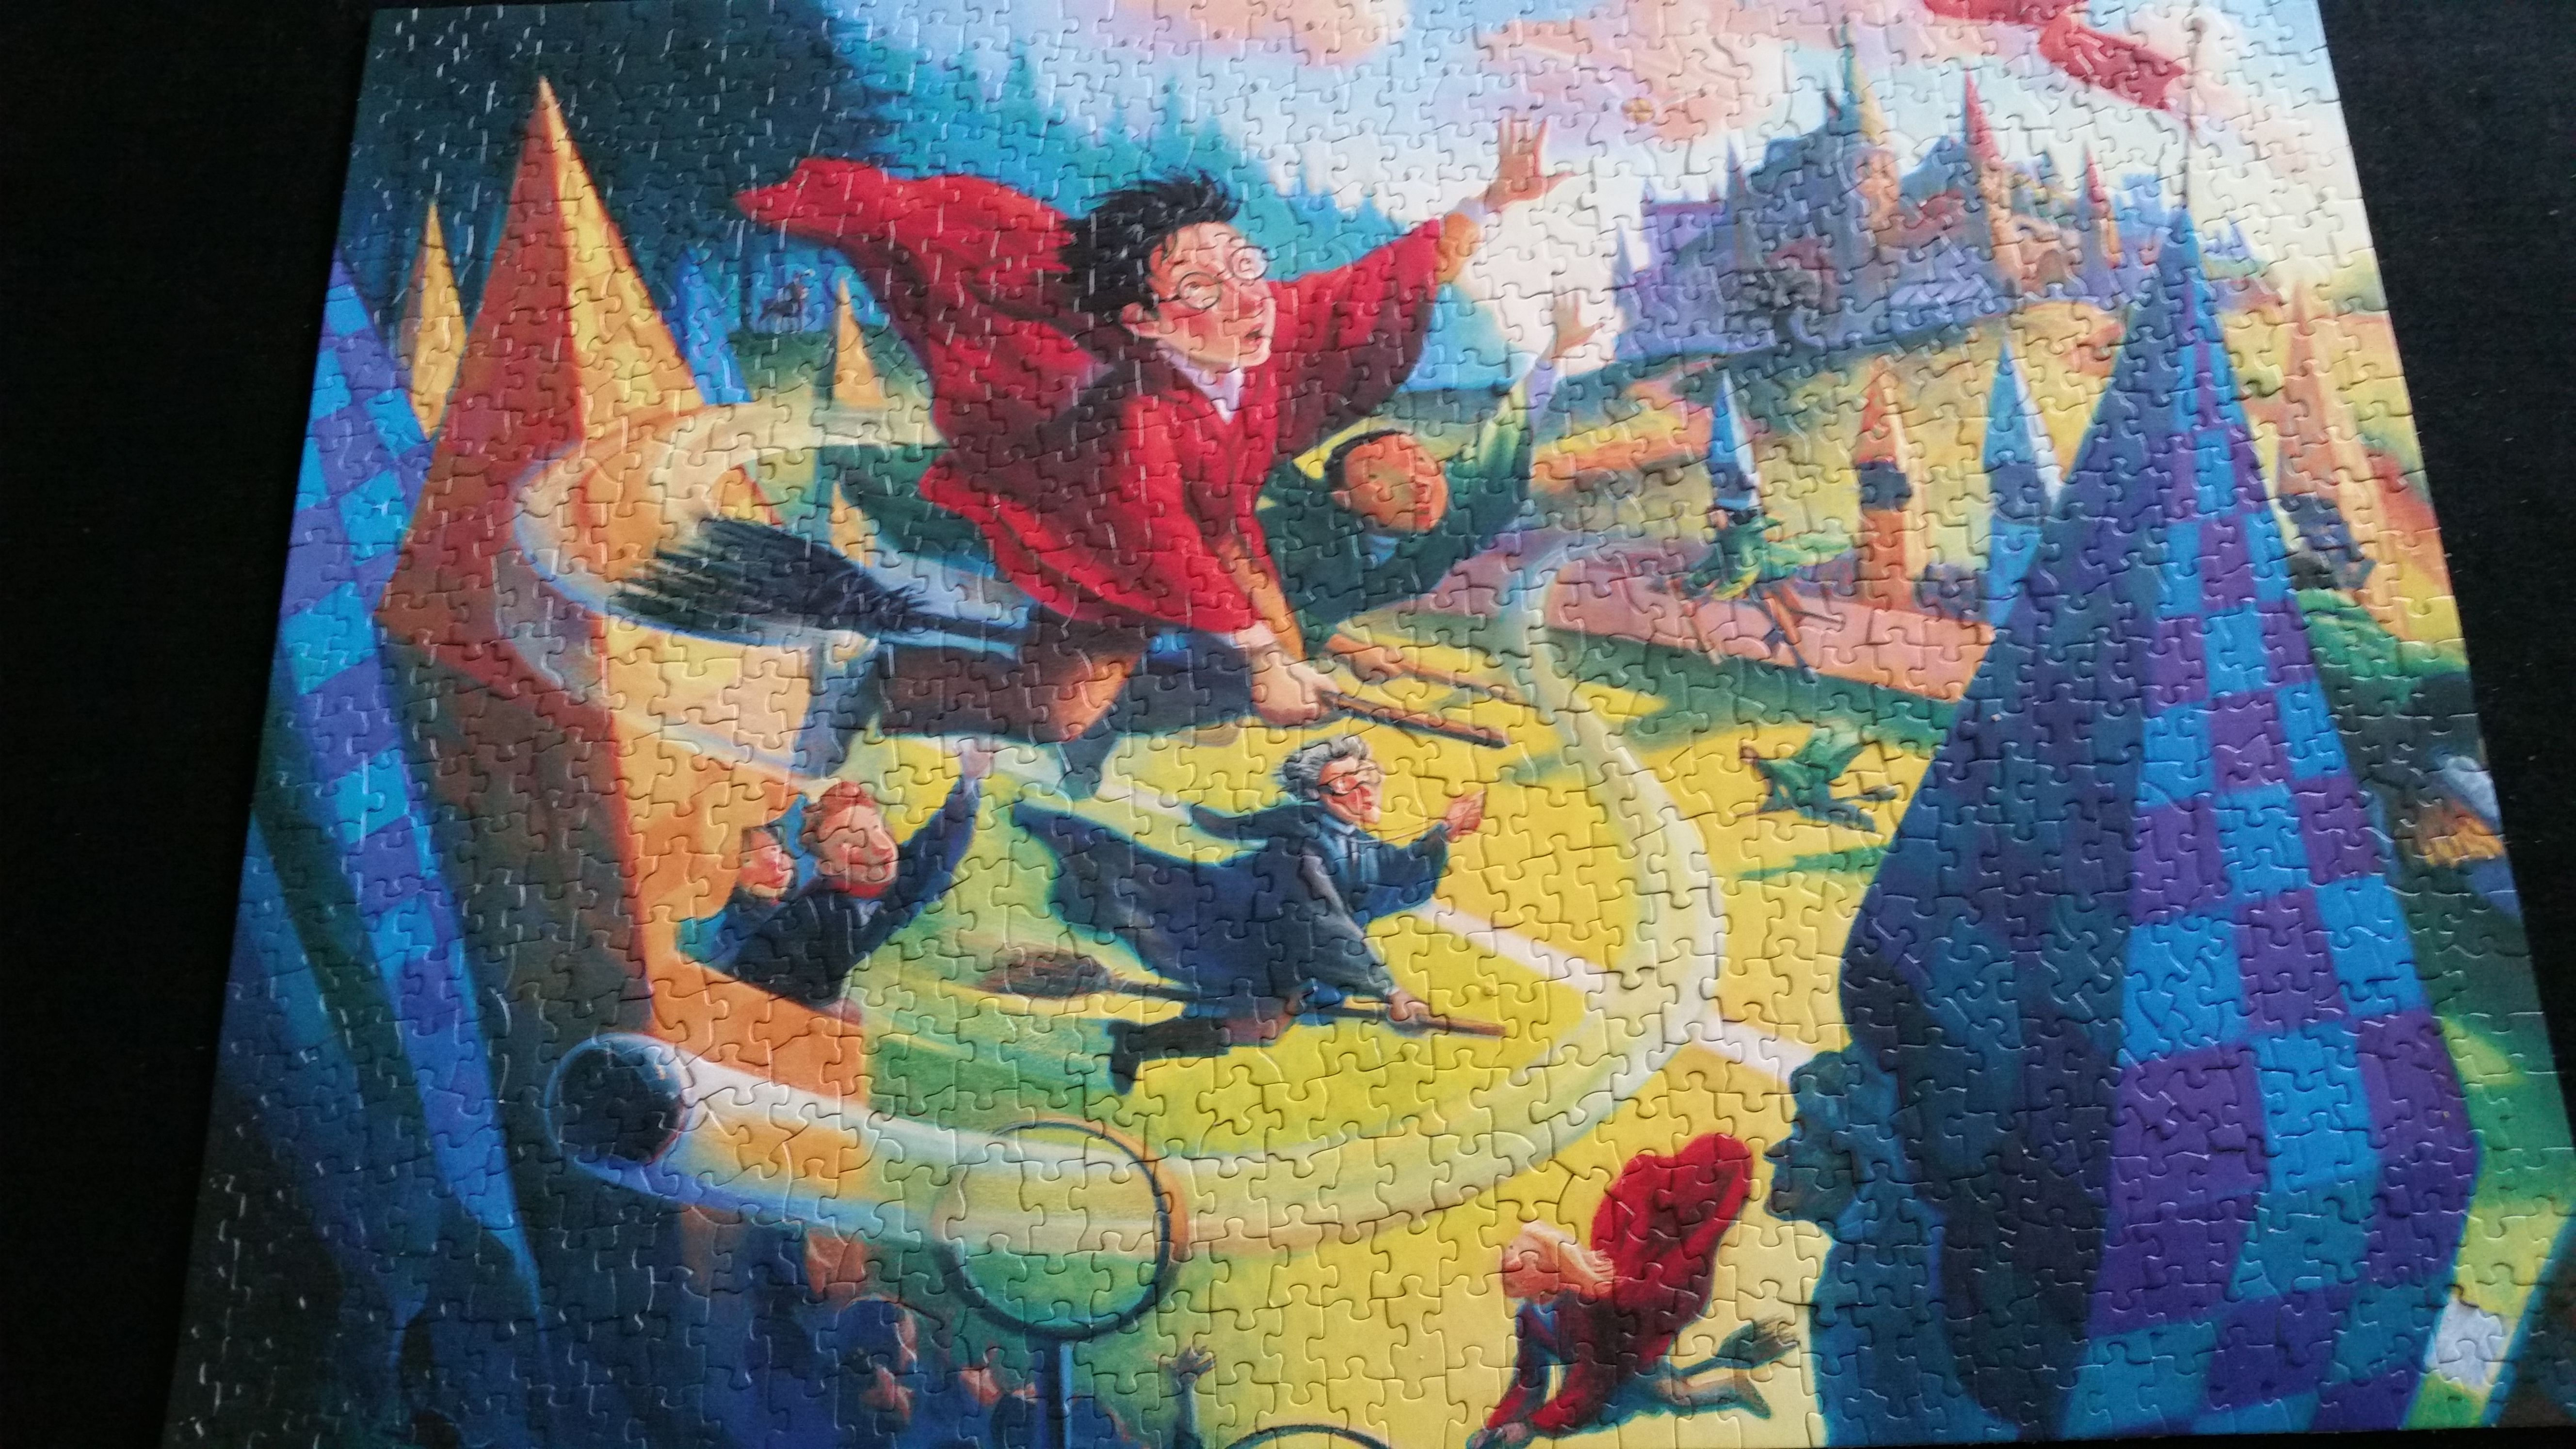 Harry Potter Quidditch (1,000) Art, Painting, Harry potter